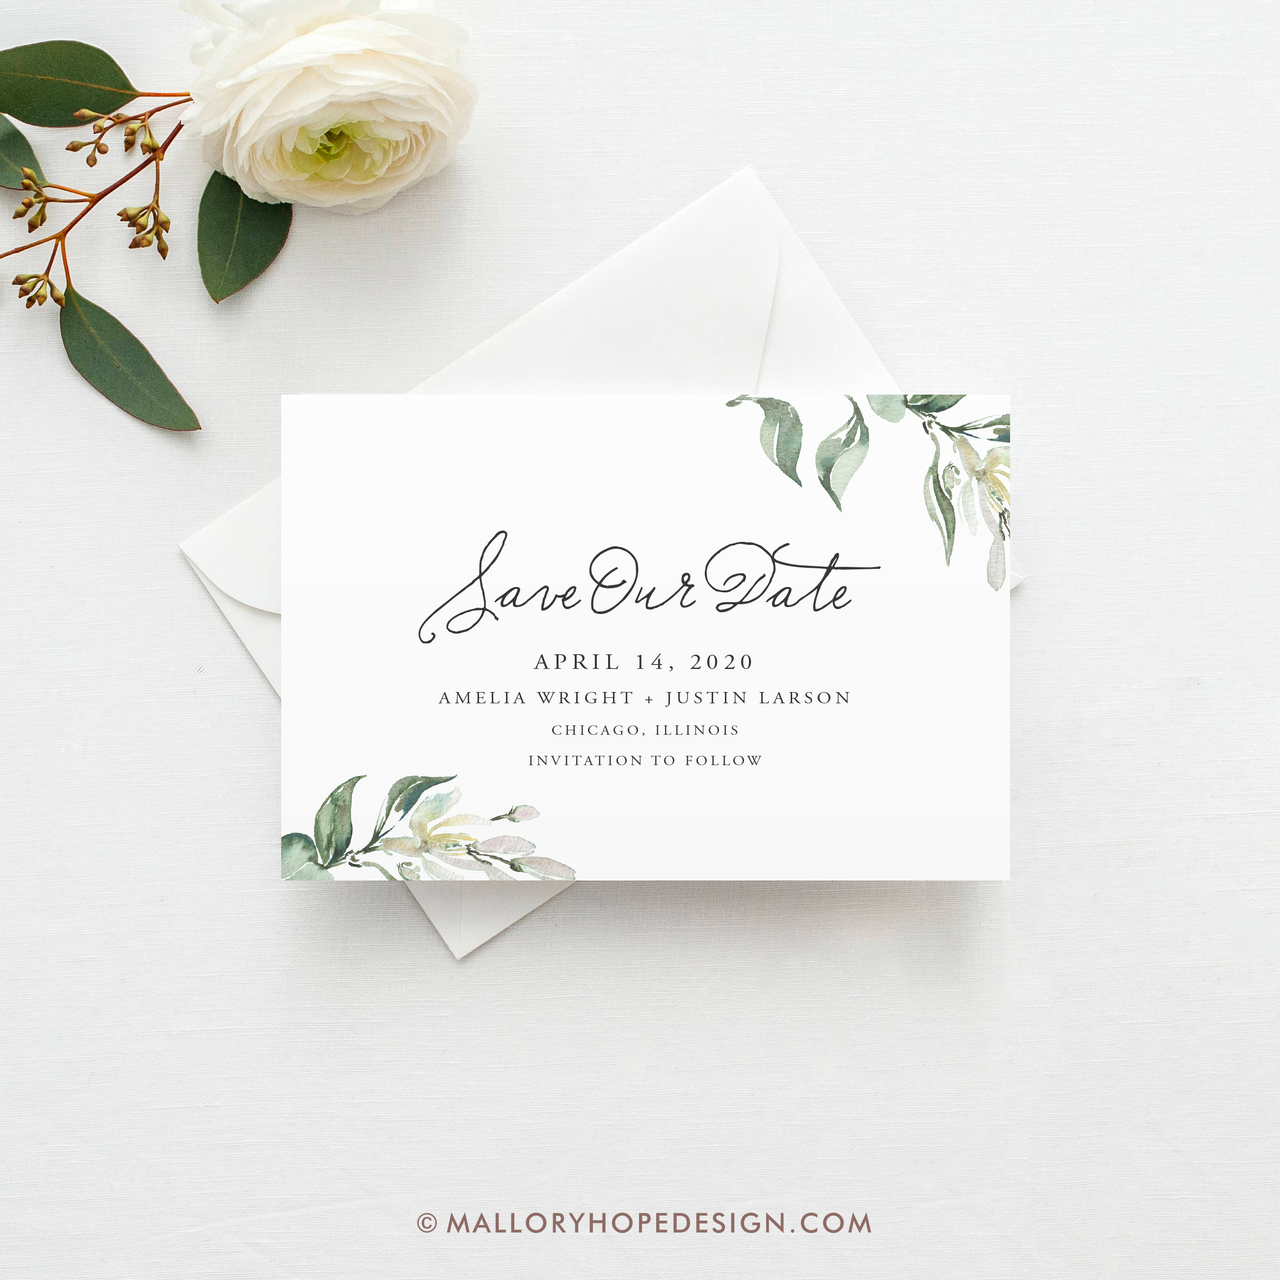 Save Our Date Greenery Wedding PRINTED Greenery Save The Date Save The Date Invitation